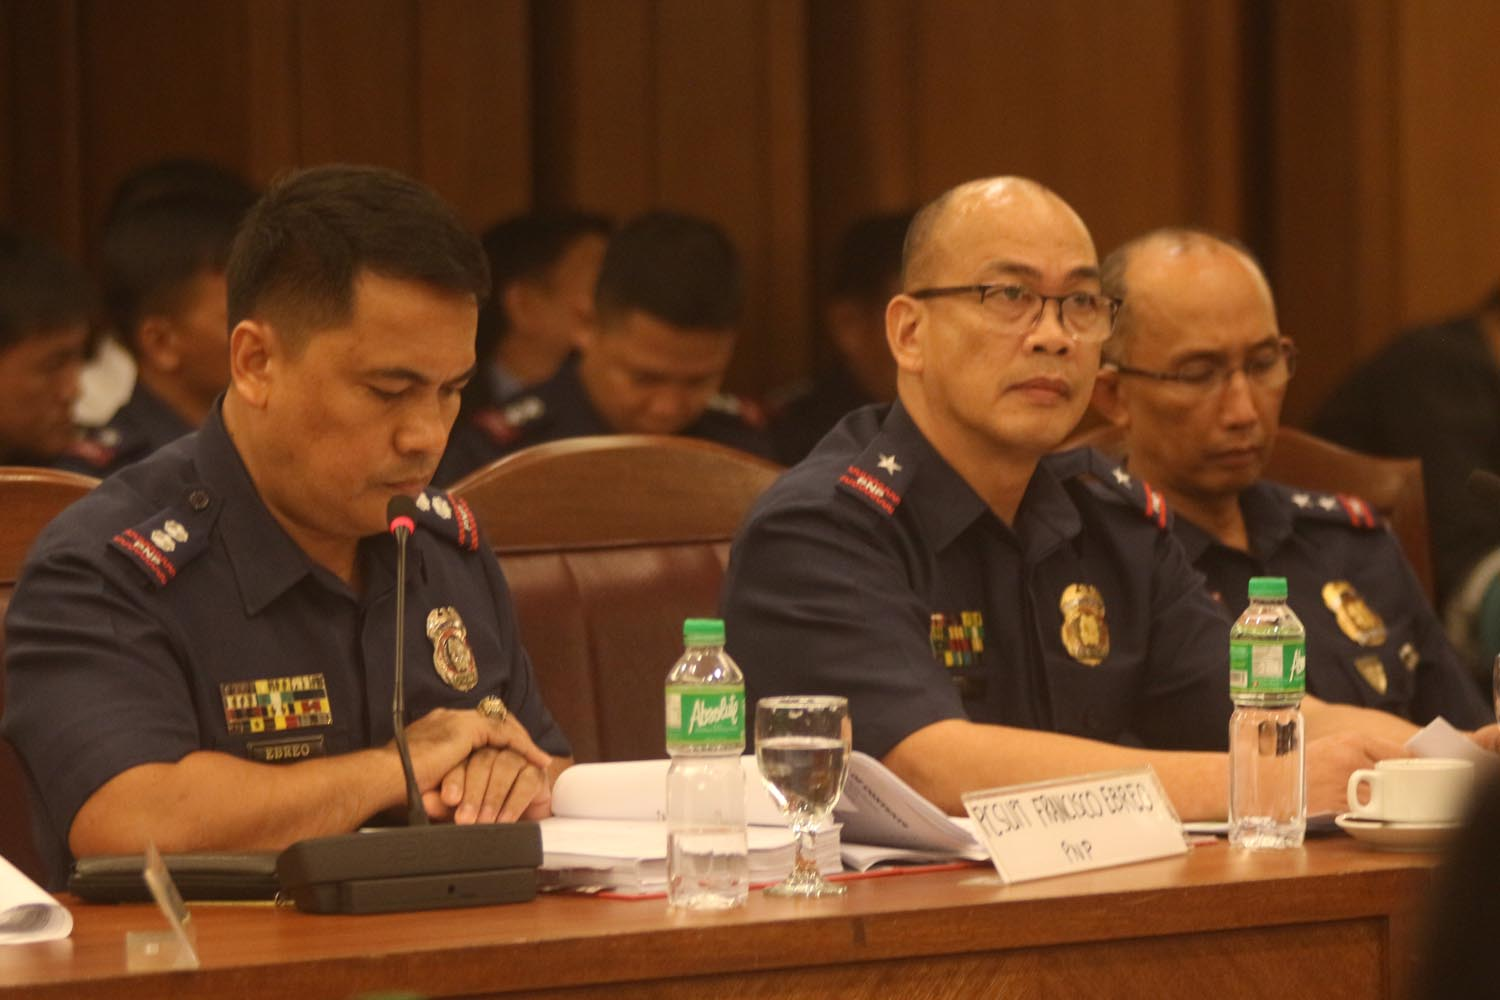 HOUSE PROBE. (Left to right) Police Superintendents Francisco Ebreo and Eliseo Rasco, and Police Superintendent Benjamin Magalong attend a House inquiry on November 16, 2016. Photo by Joel Liporada/Rappler